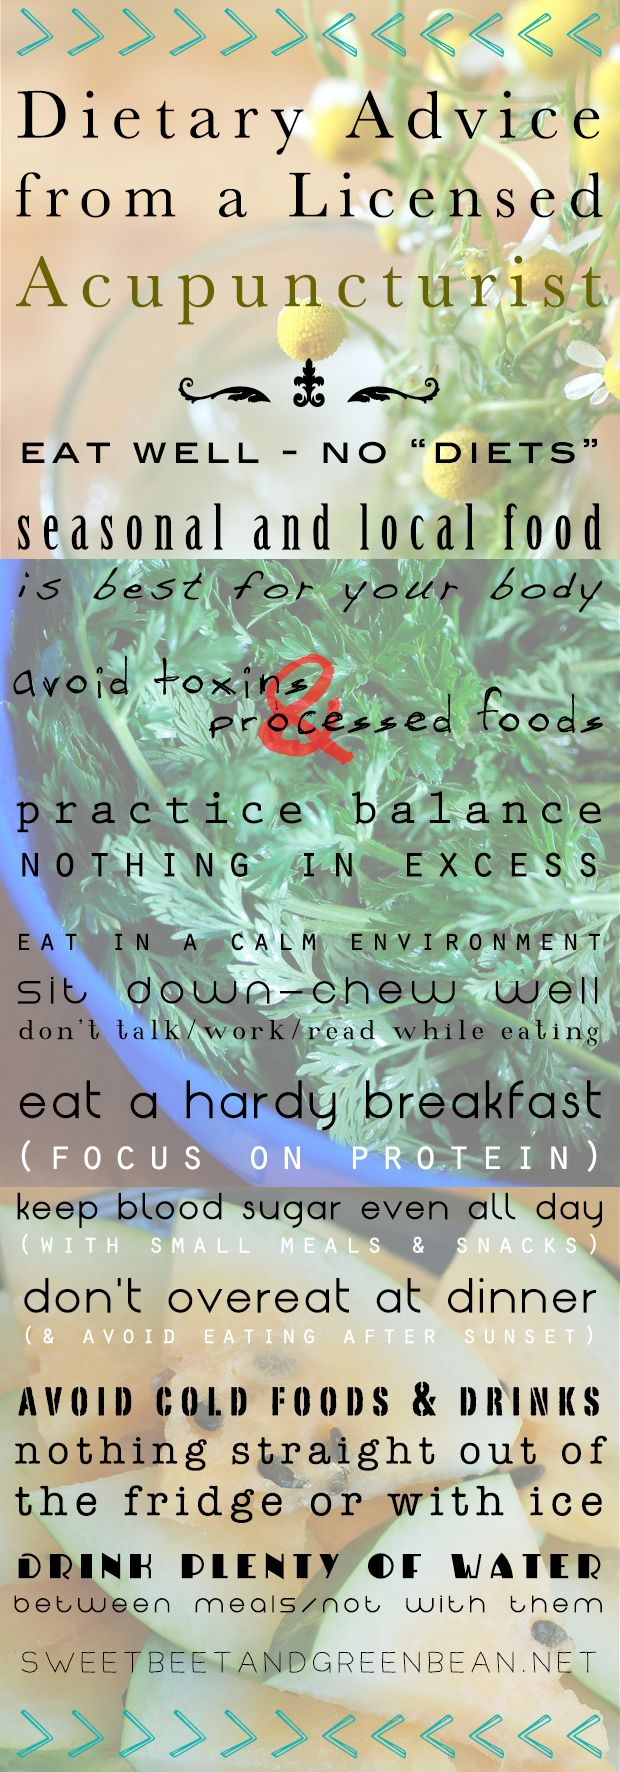 Dietary Advice from a Licensed Acupuncturist http://sweetbeetandgreenbean.net/2013/08/22/dietary-advice-from-a-licensed-acupuncturist/